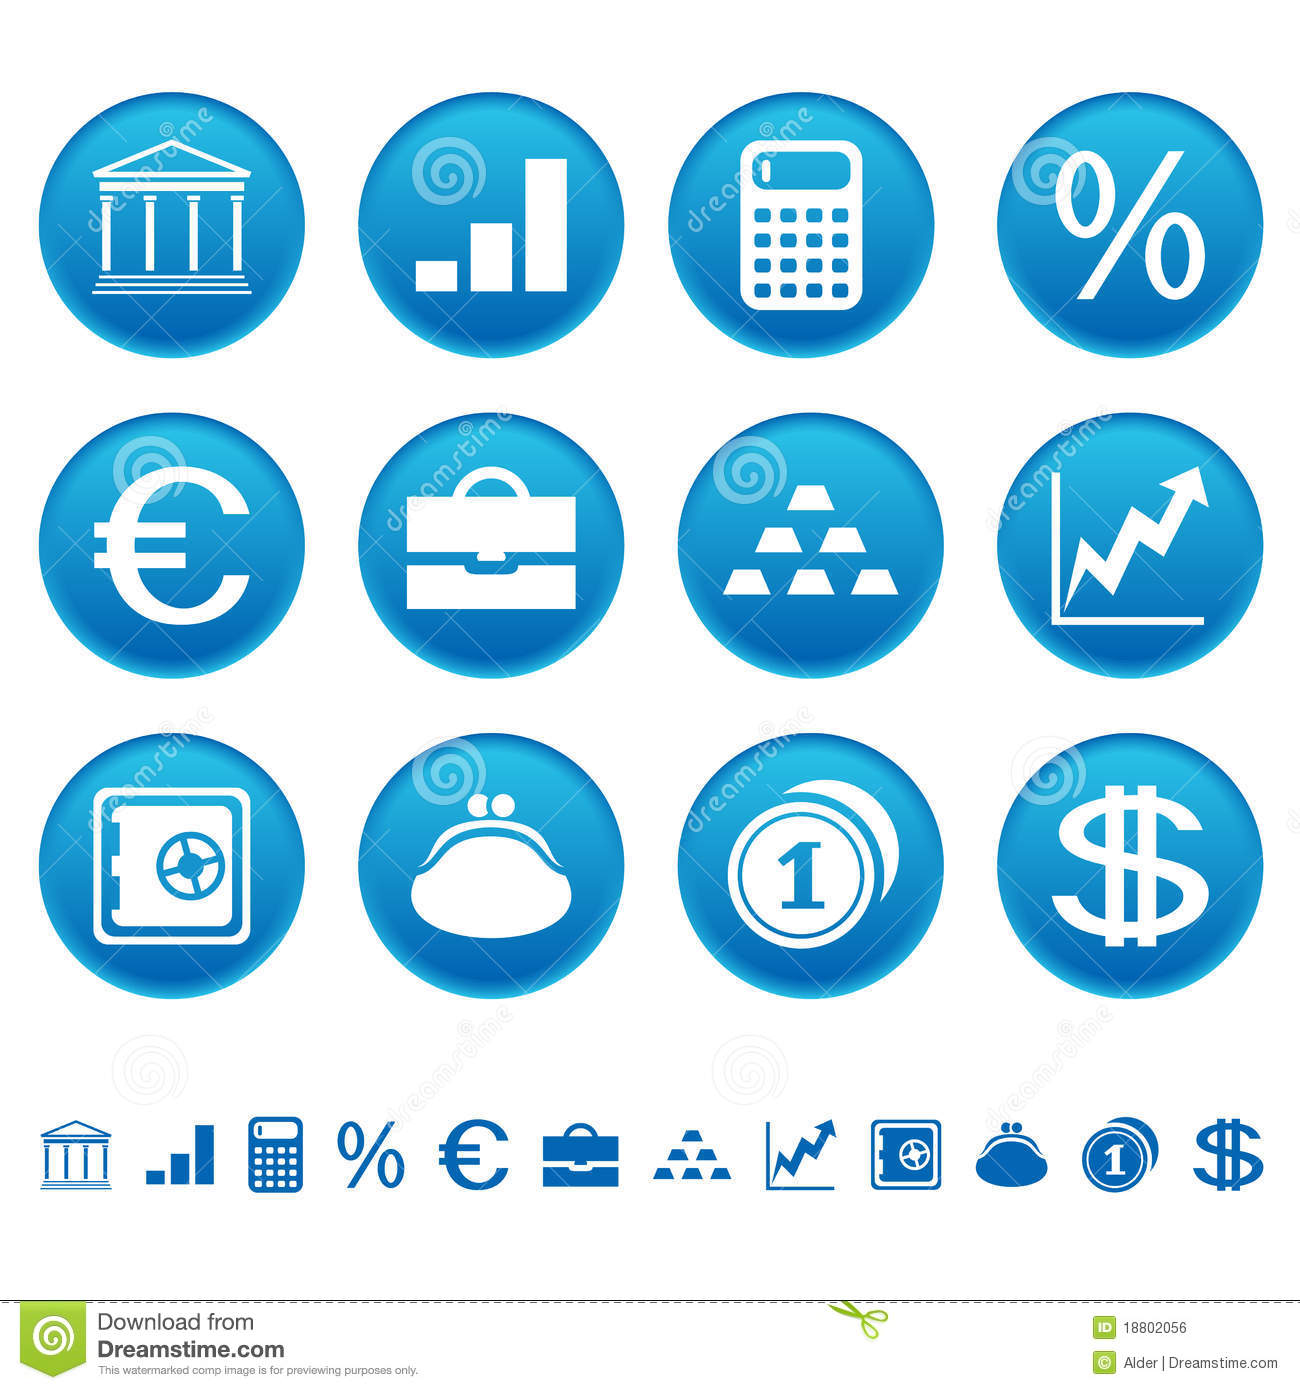 Banks & Finance Icons Royalty Free Stock Image - Image: 18802056